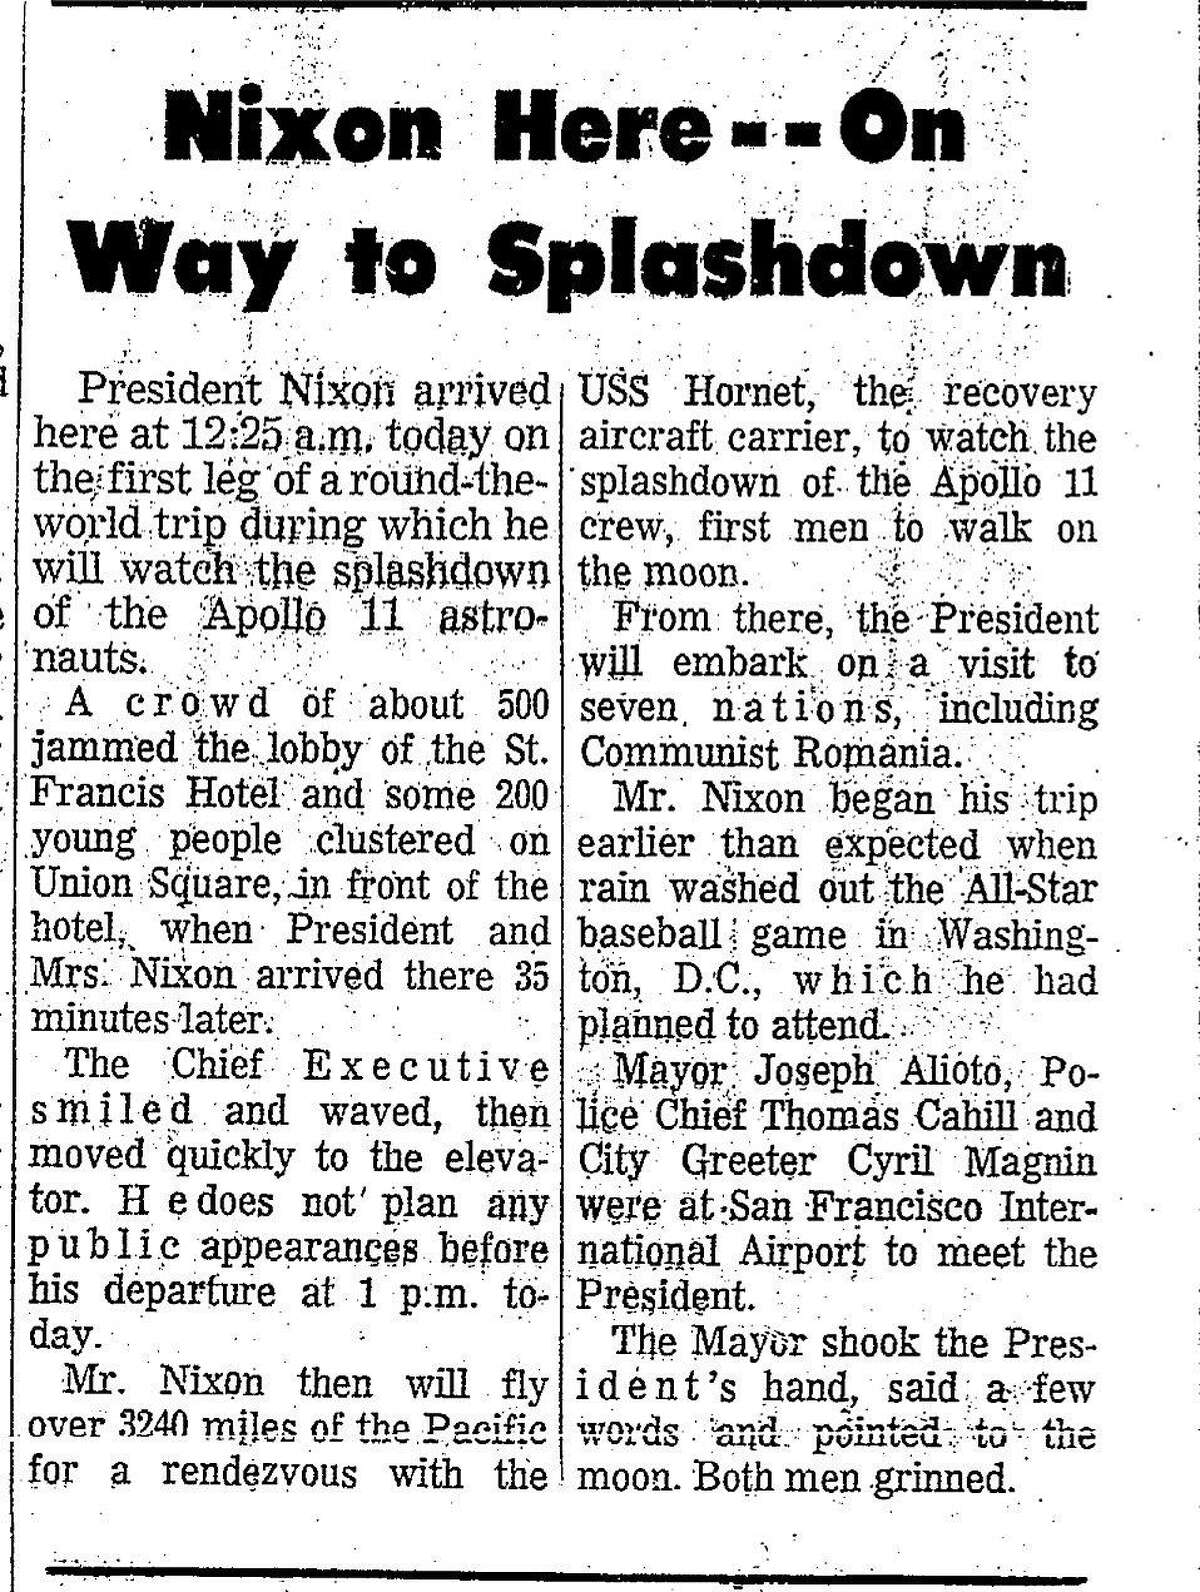 The July 23, 1969 Chronicle reports on the visit of Richard Nixon, who would stay at the St. Francisc hotel overnight before continuing his journey